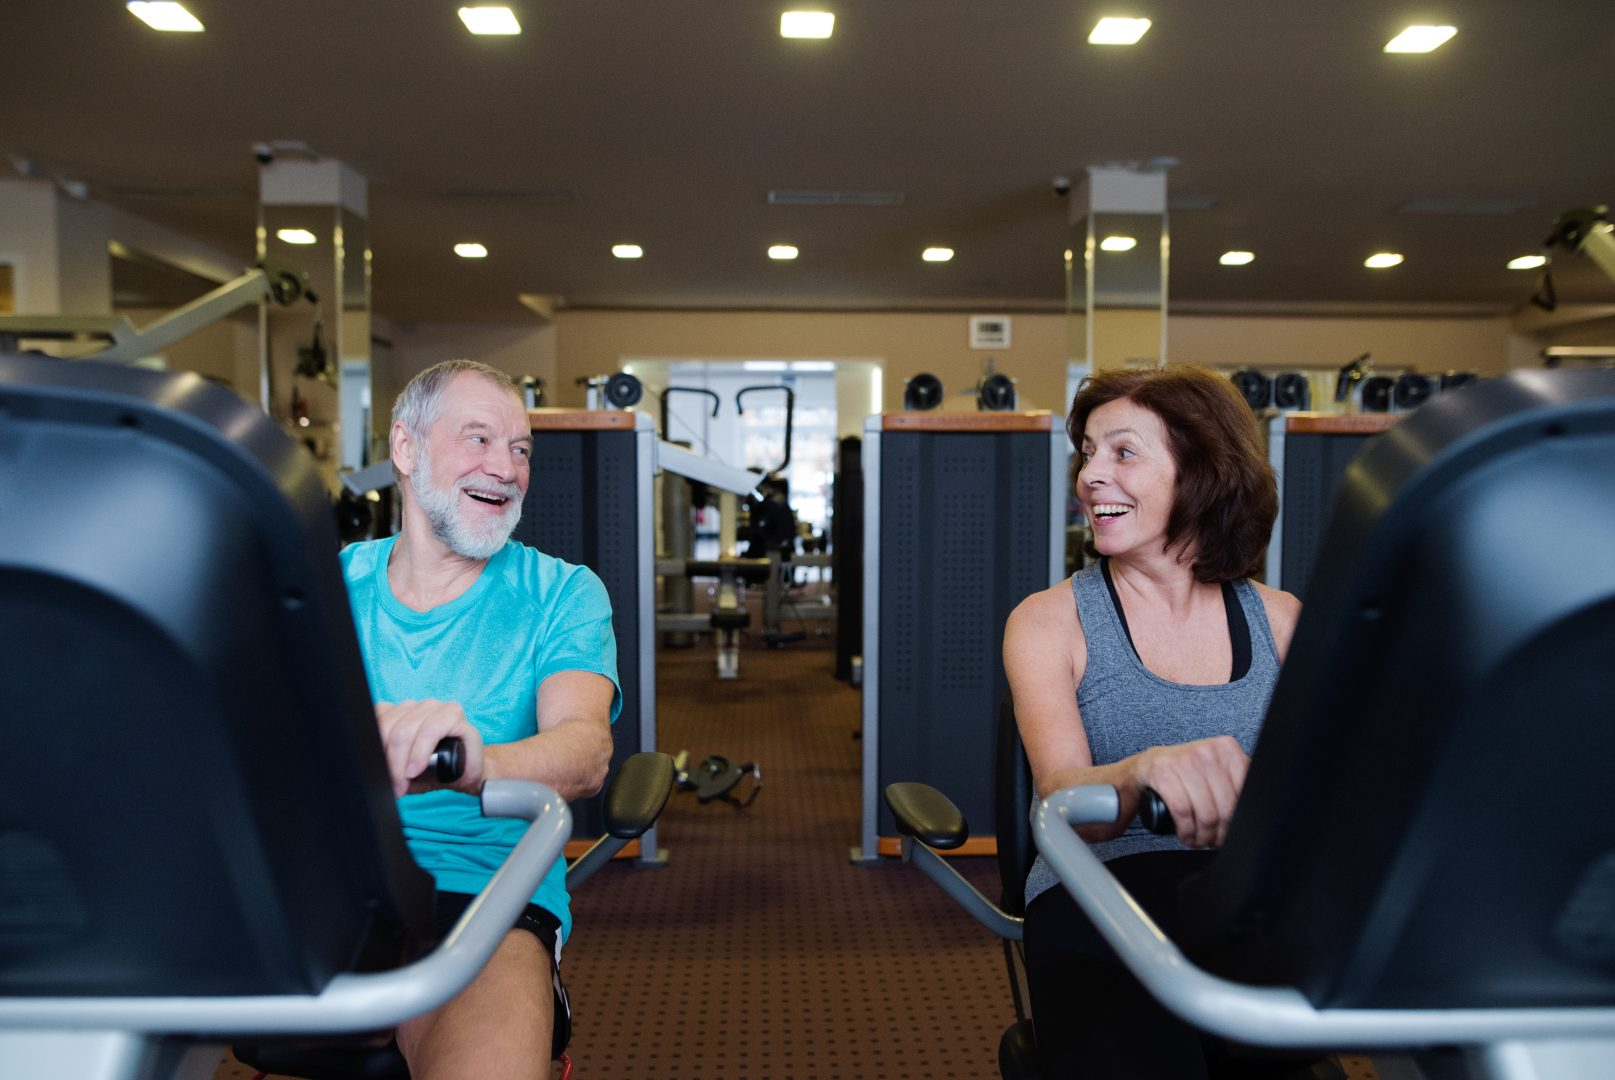 Recumbent Bike Workouts For Beginners - Primo Fitness